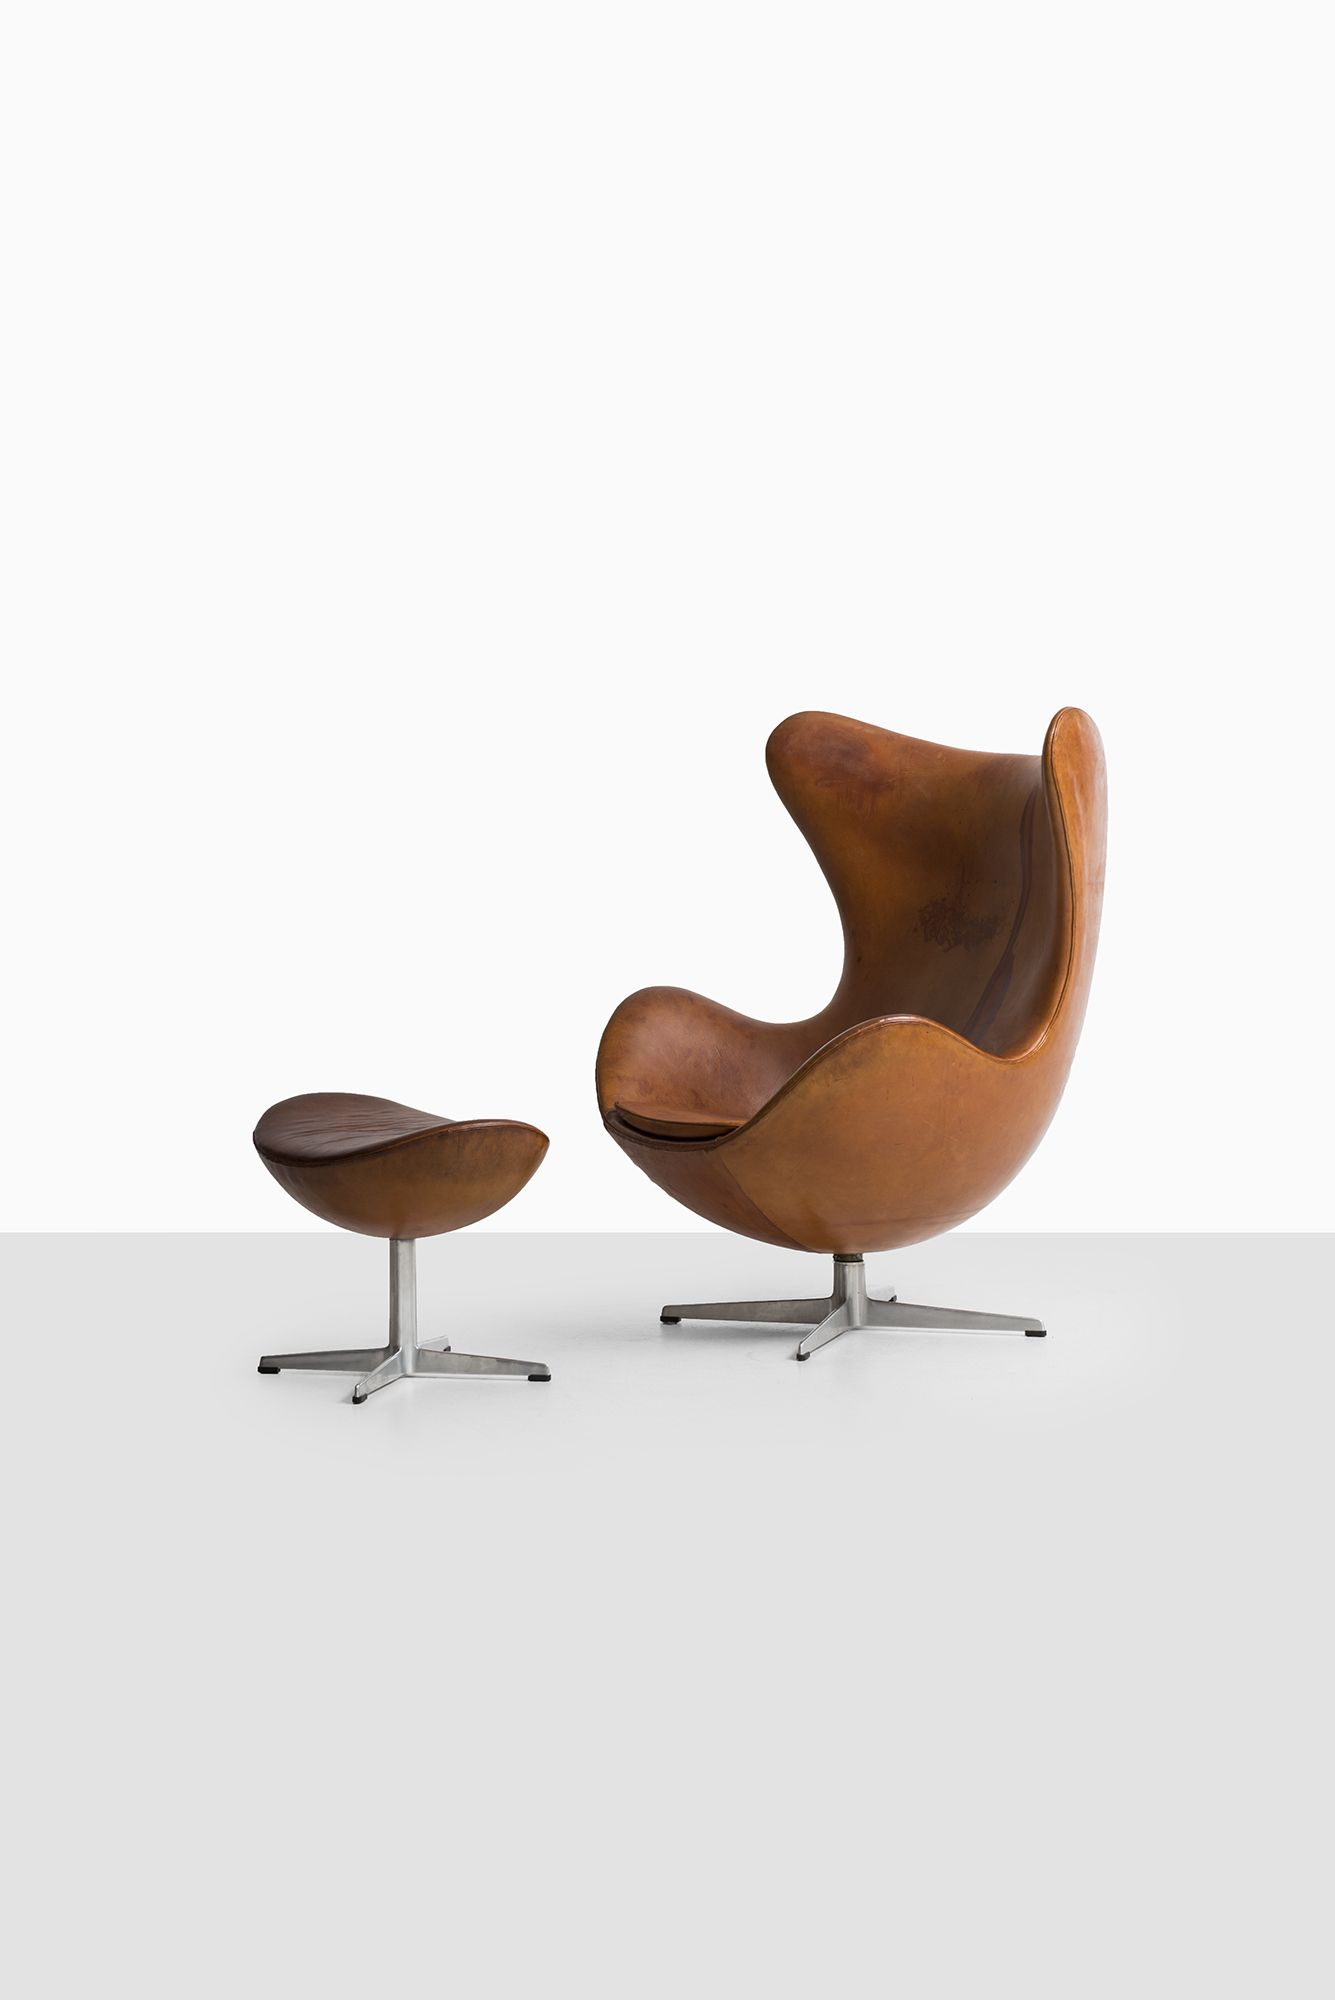 Arne jacobsen egg chair leather - Arne Jacobsen Egg Chair In Cognac Brown Leather At Studio Schalling